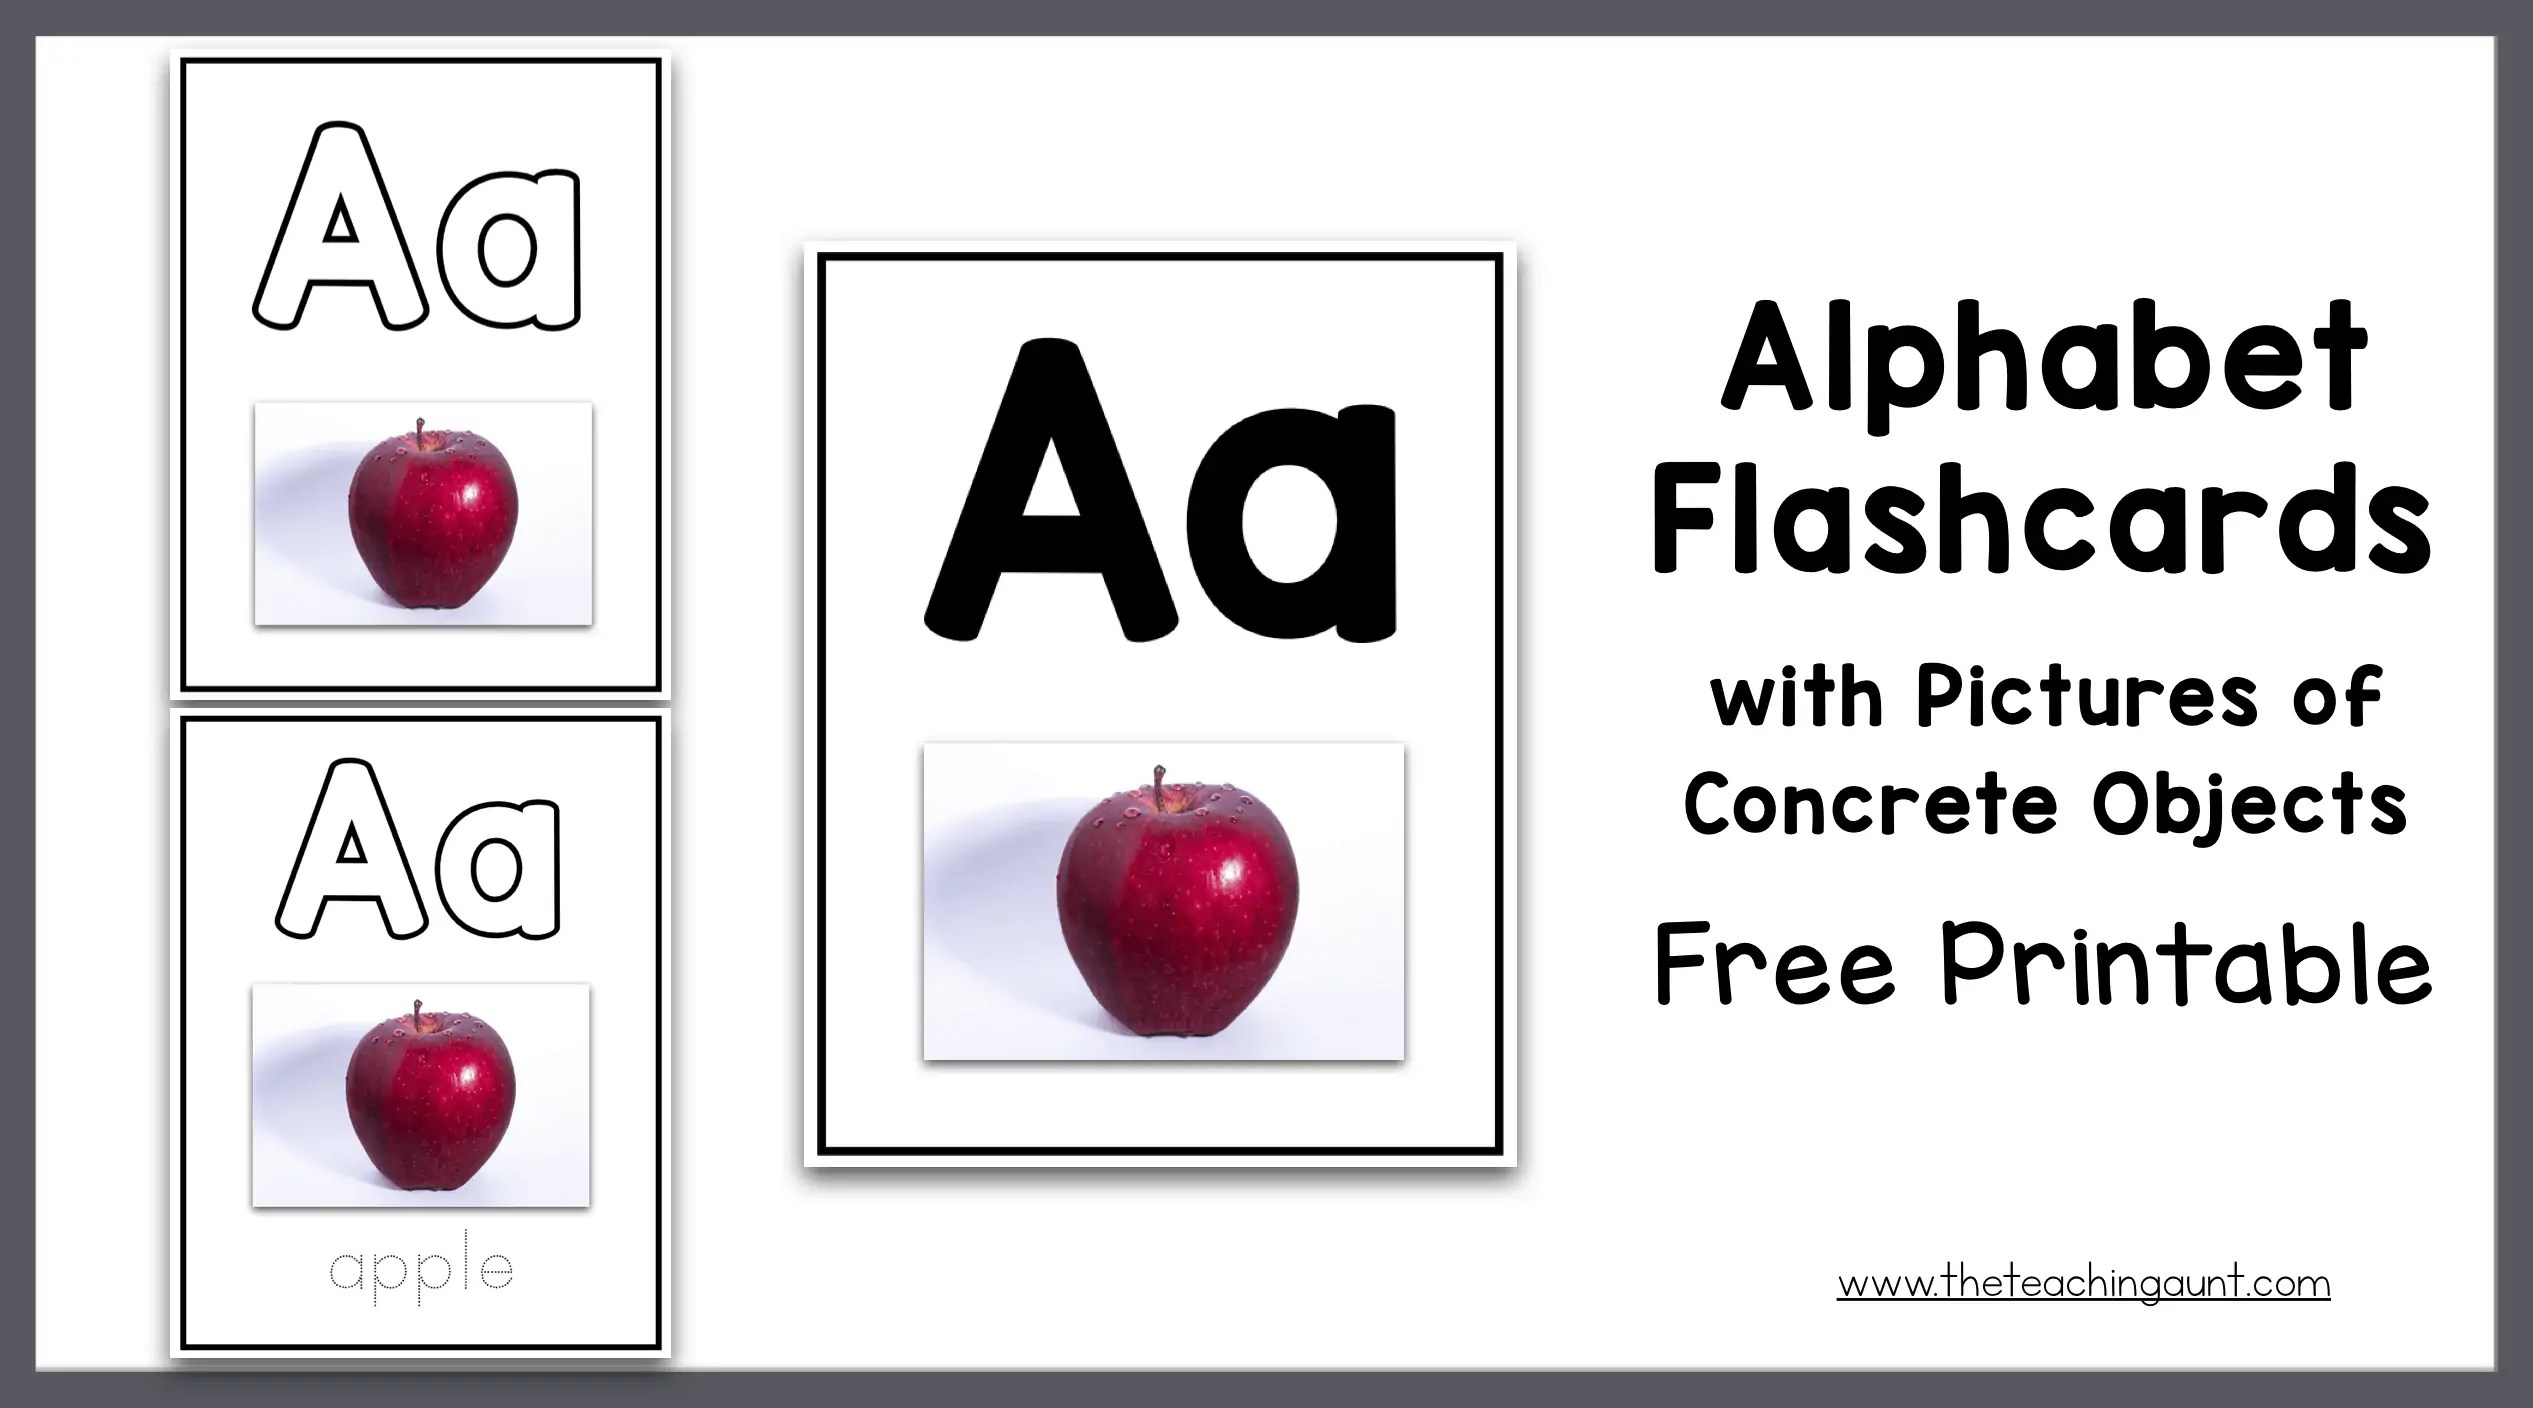 photograph about Abc Flash Cards Printable known as Alphabet Flashcards with Pics of Concrete Products - The